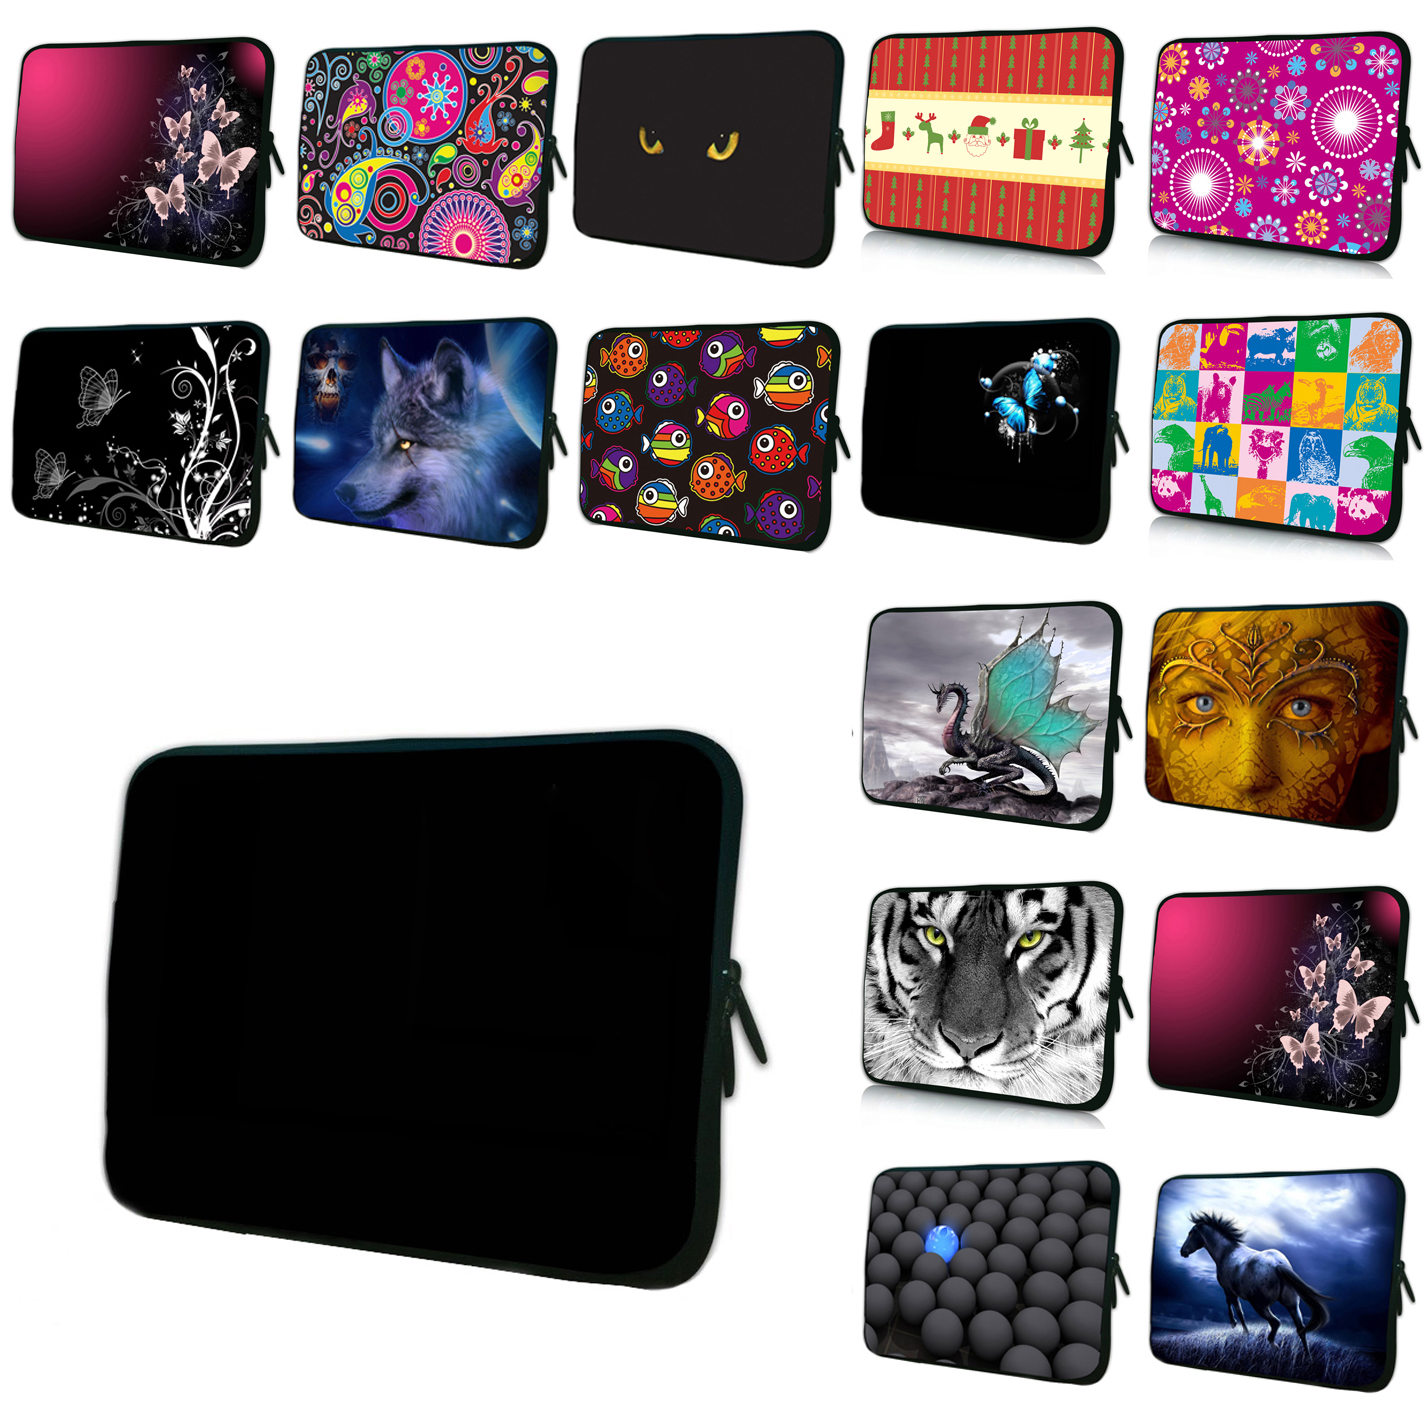 7 8 Mini PC Tablets Shell Case Bags For Apple Chuwi Lenovo Xiaomi 10 10.1 11.6 12 13.3 14 15 15.6 17 Notebook Shell Cover Bag